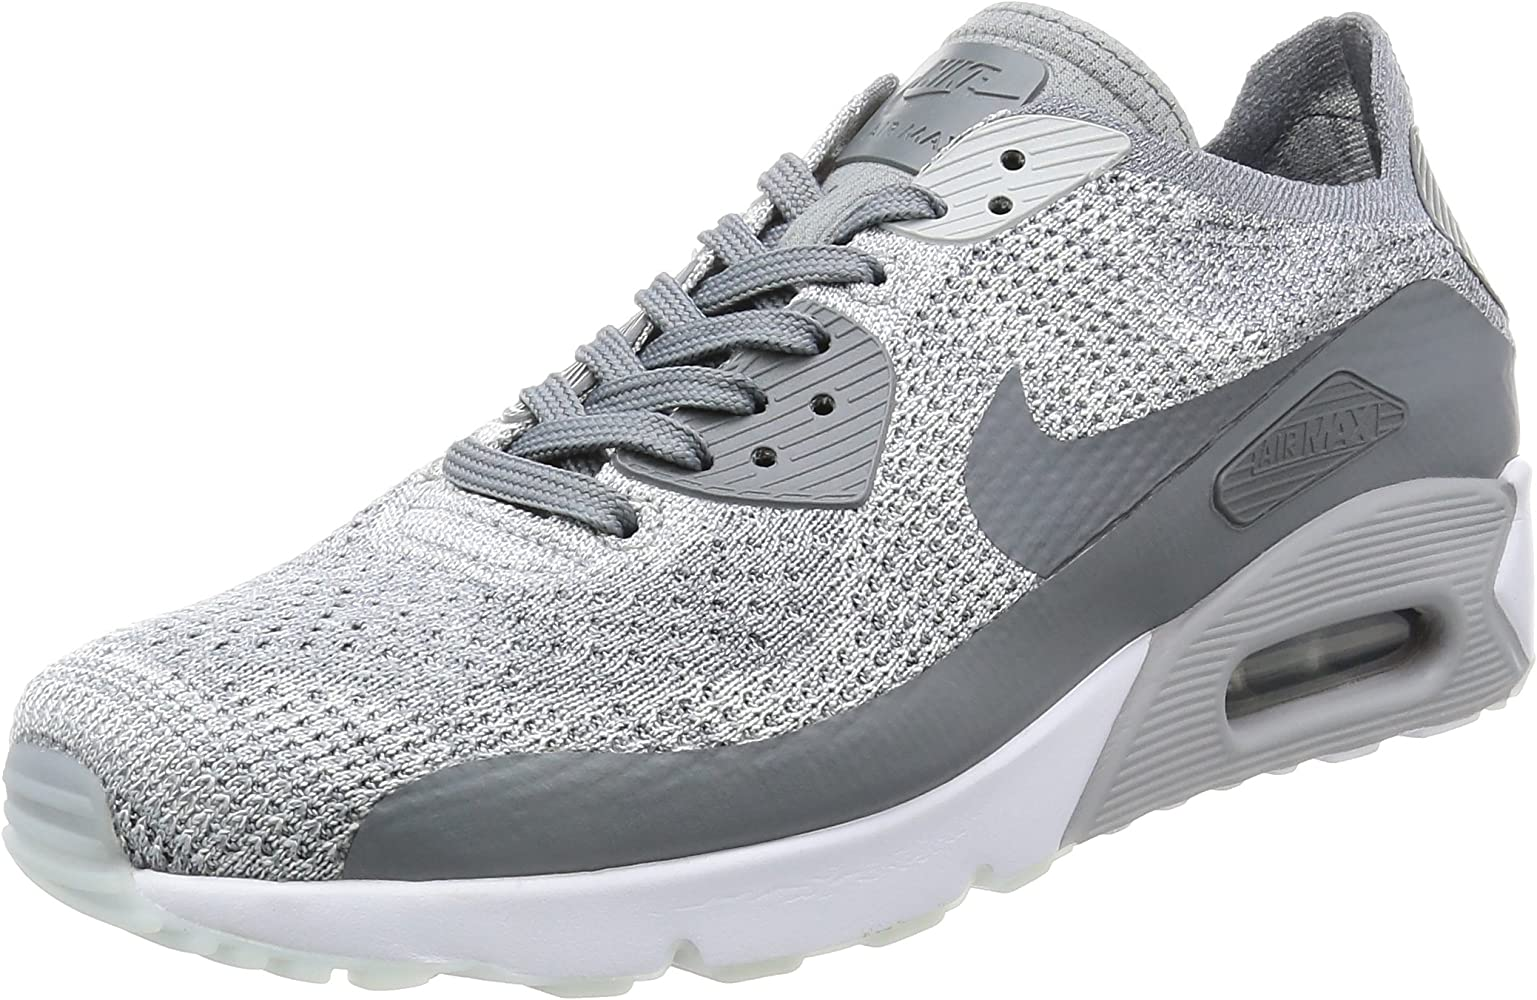 reputable site 8438d 8bfcd Men's Air Max 90 Ultra 2.0 Flyknit, Pure Platinum/Cool Grey-White, 11 M US